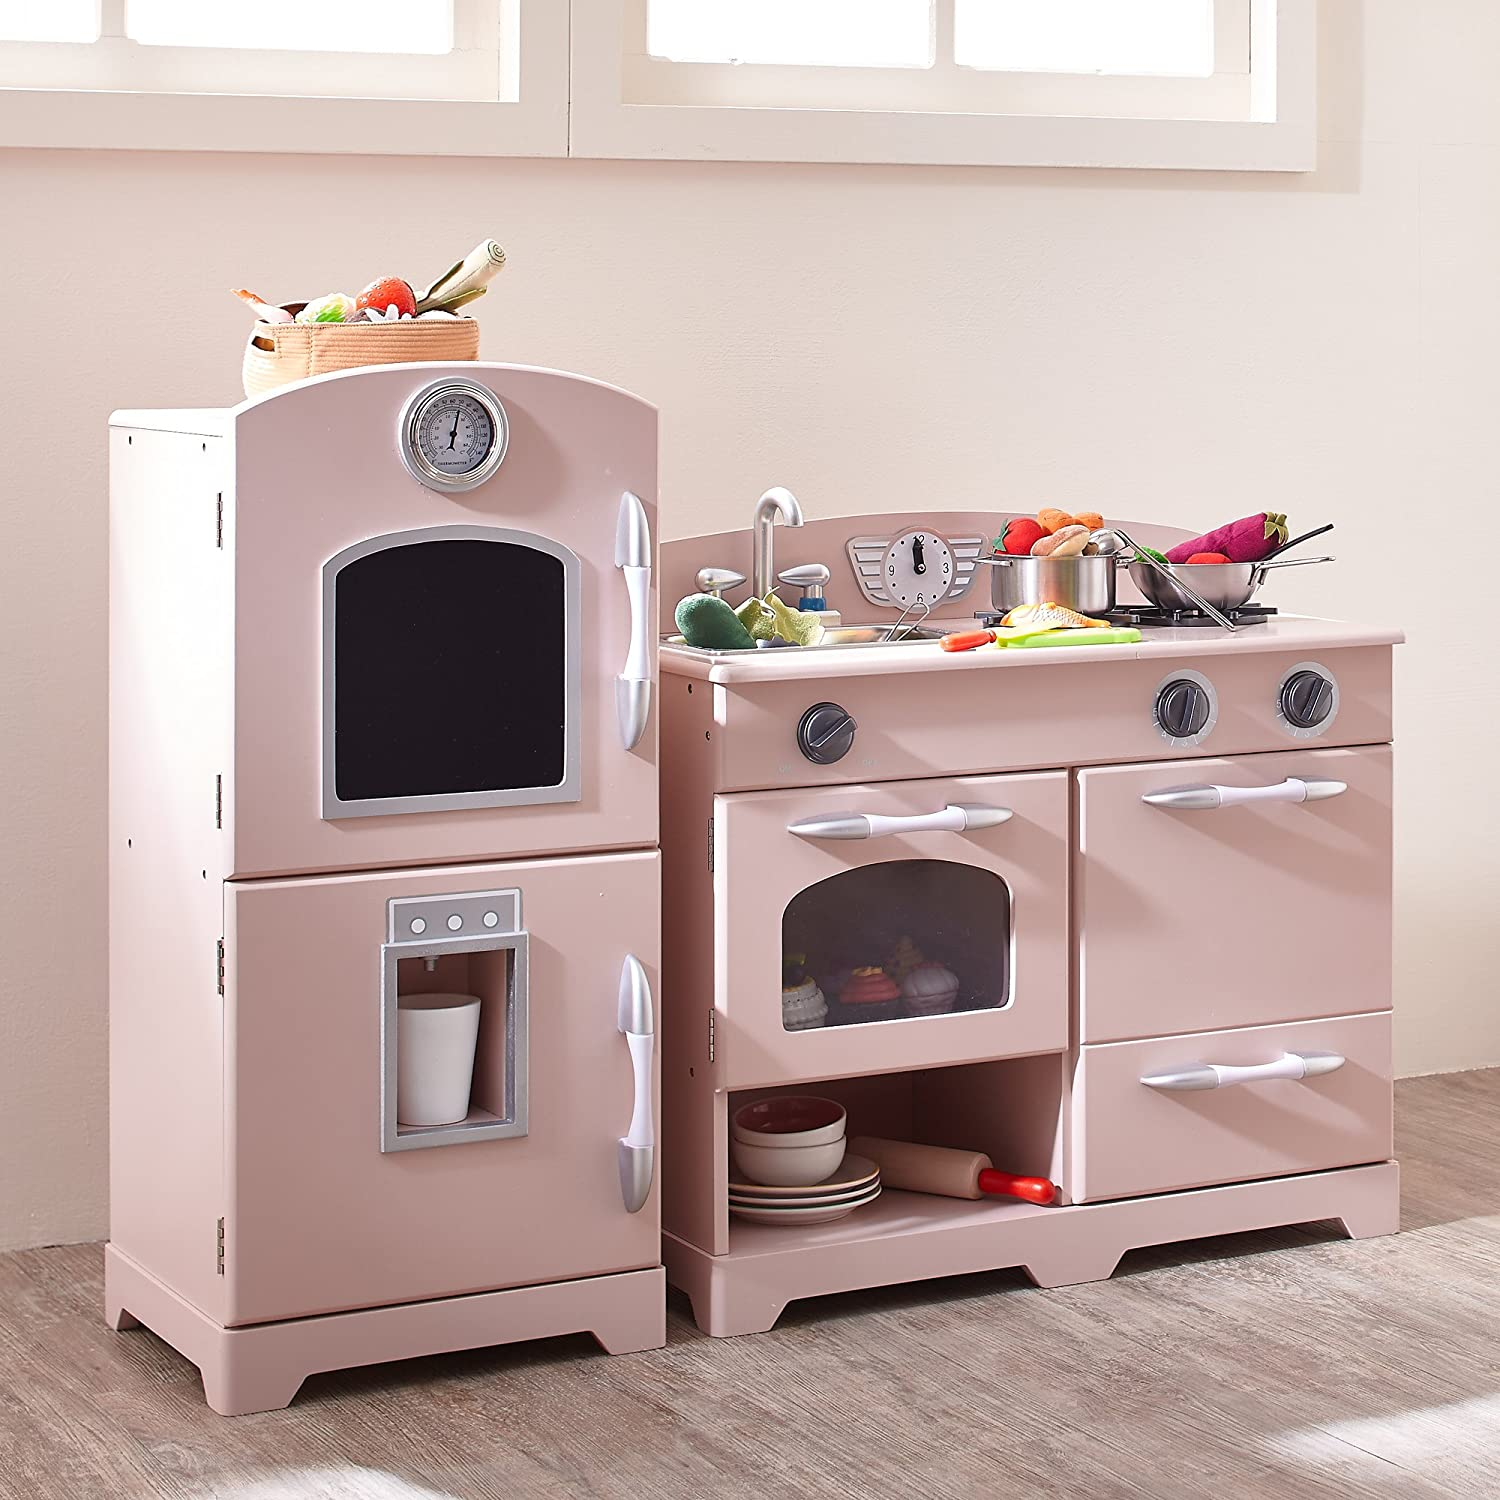 Merveilleux Amazon.com: Teamson Kids   Retro Wooden Play Kitchen With Refrigerator,  Freezer, Oven And Dishwasher   Pink (2 Pieces): Toys U0026 Games